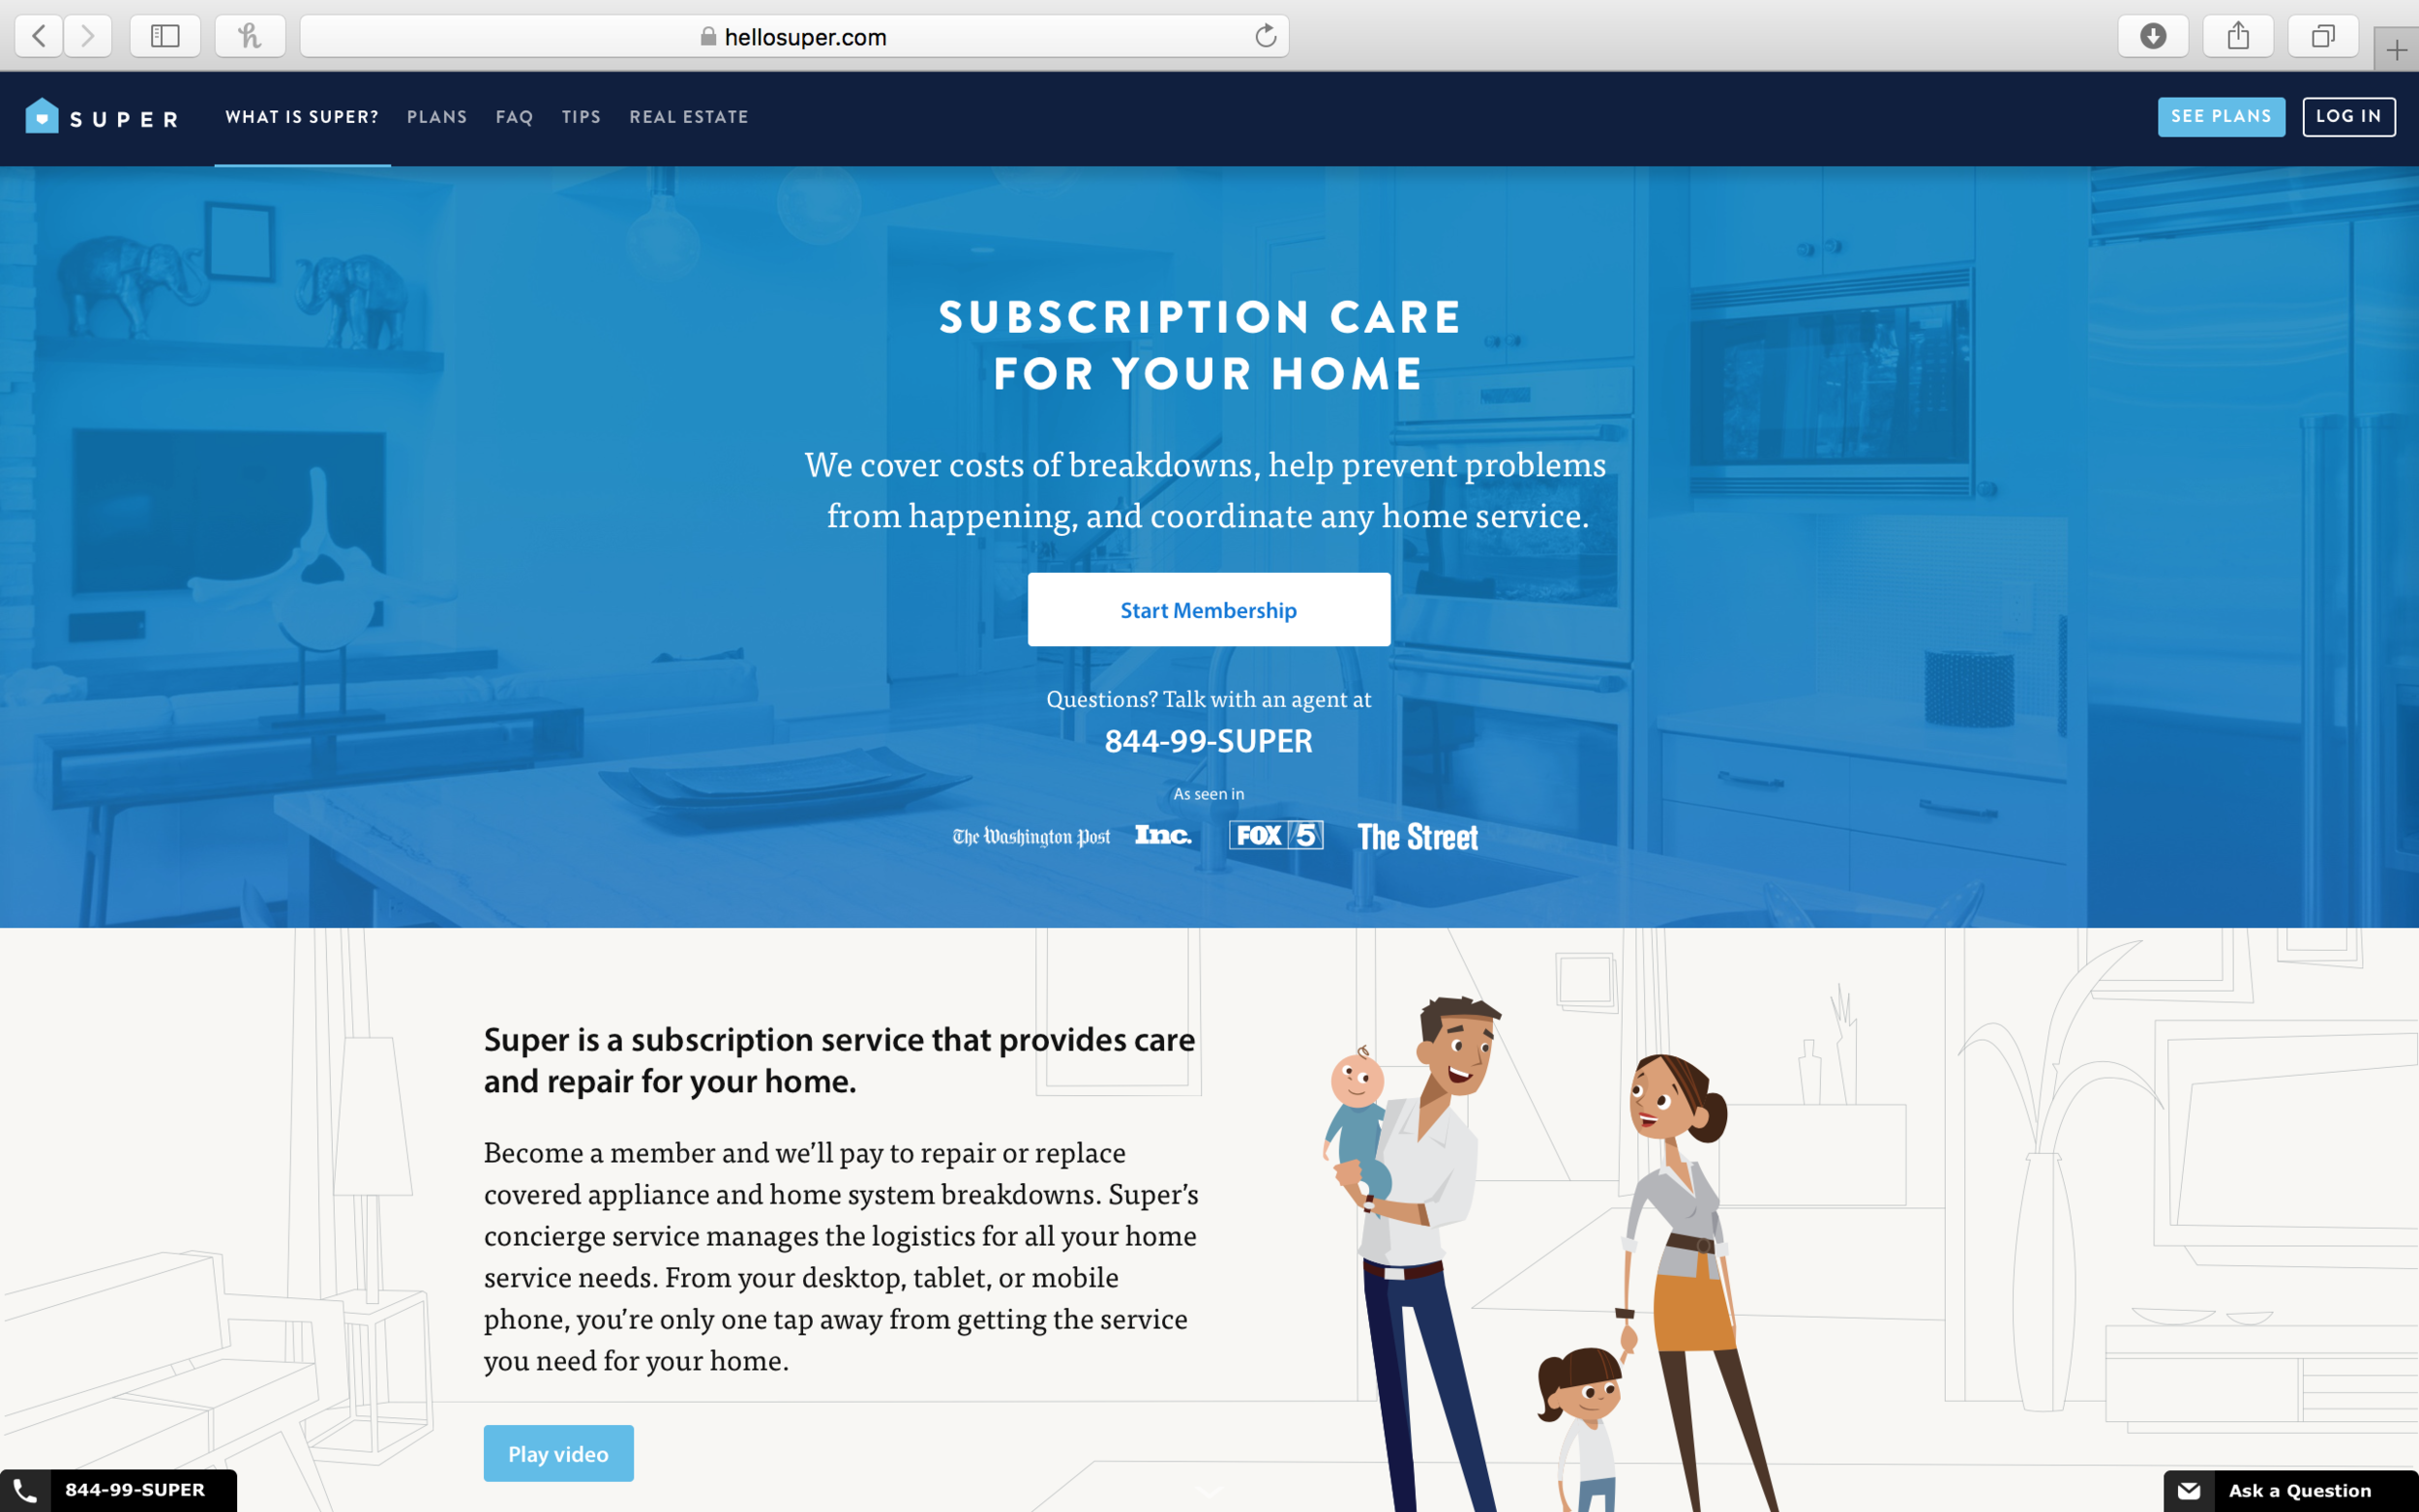 super - Super is disrupting the home warranty market. By providing a subscription service technology platform, they are taking the worry out of home ownership. Super's concierge service manages the logistics for all home service needs.